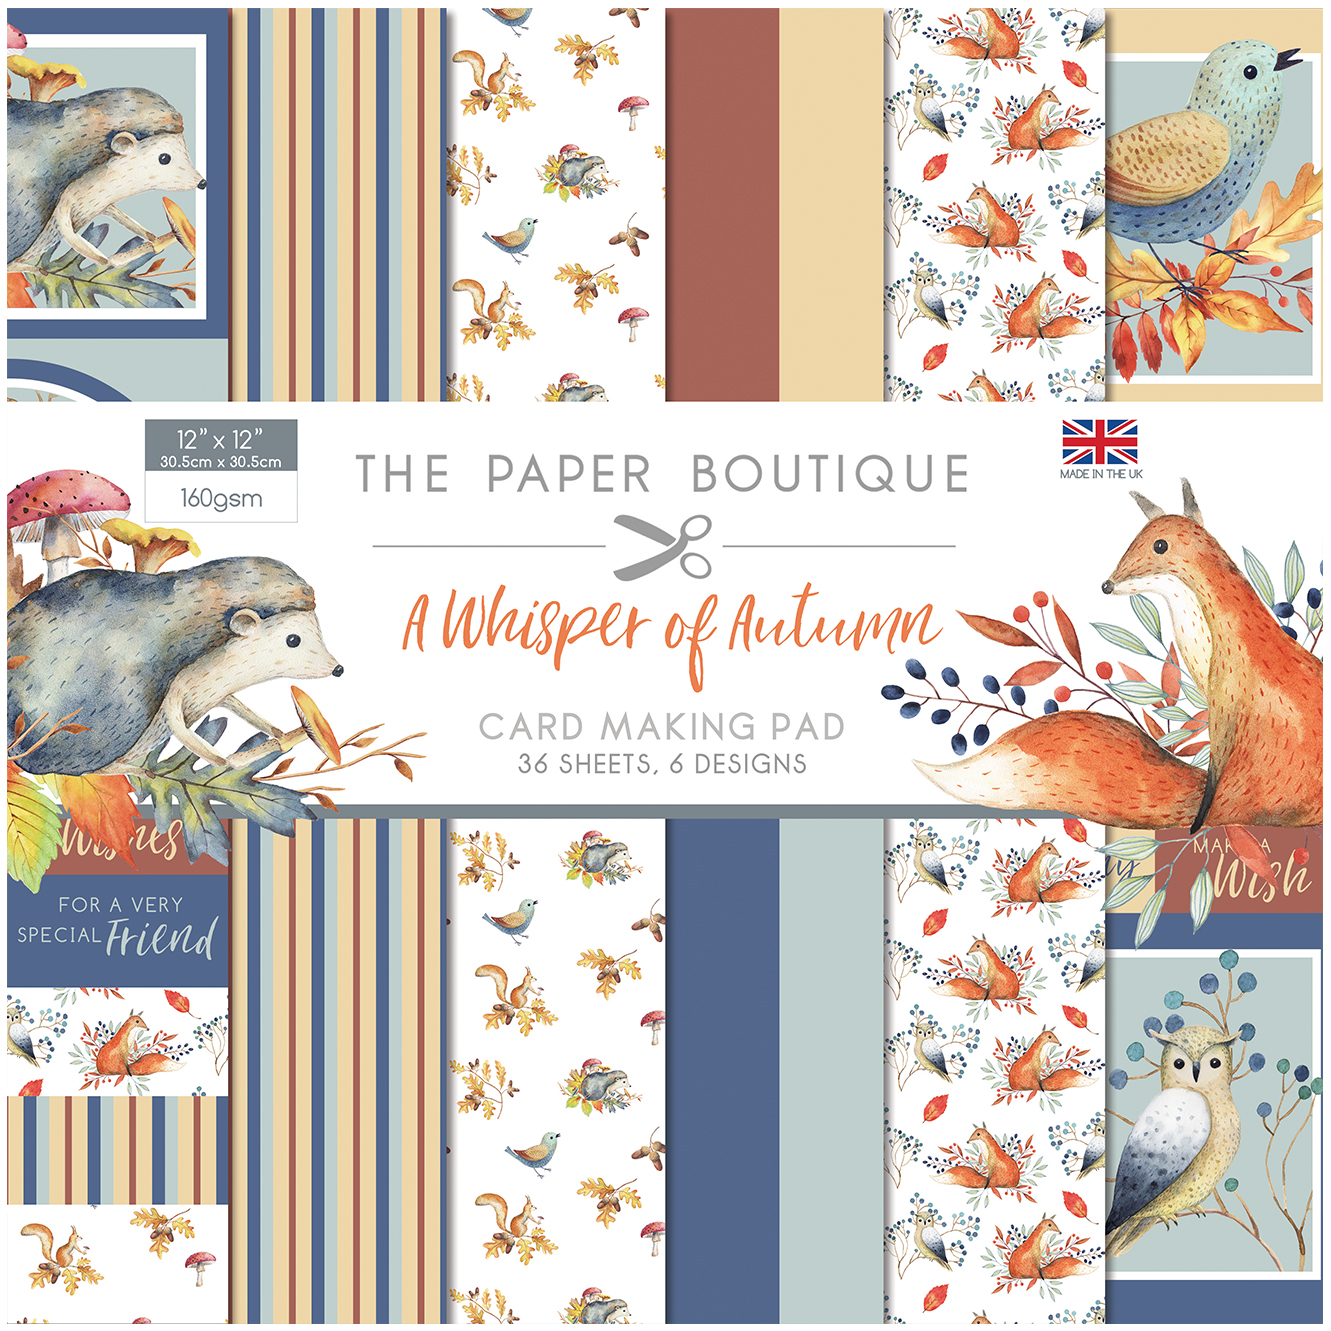 The Paper Boutique A Whisper of Autumn 12″ x 12″ Paper Pad